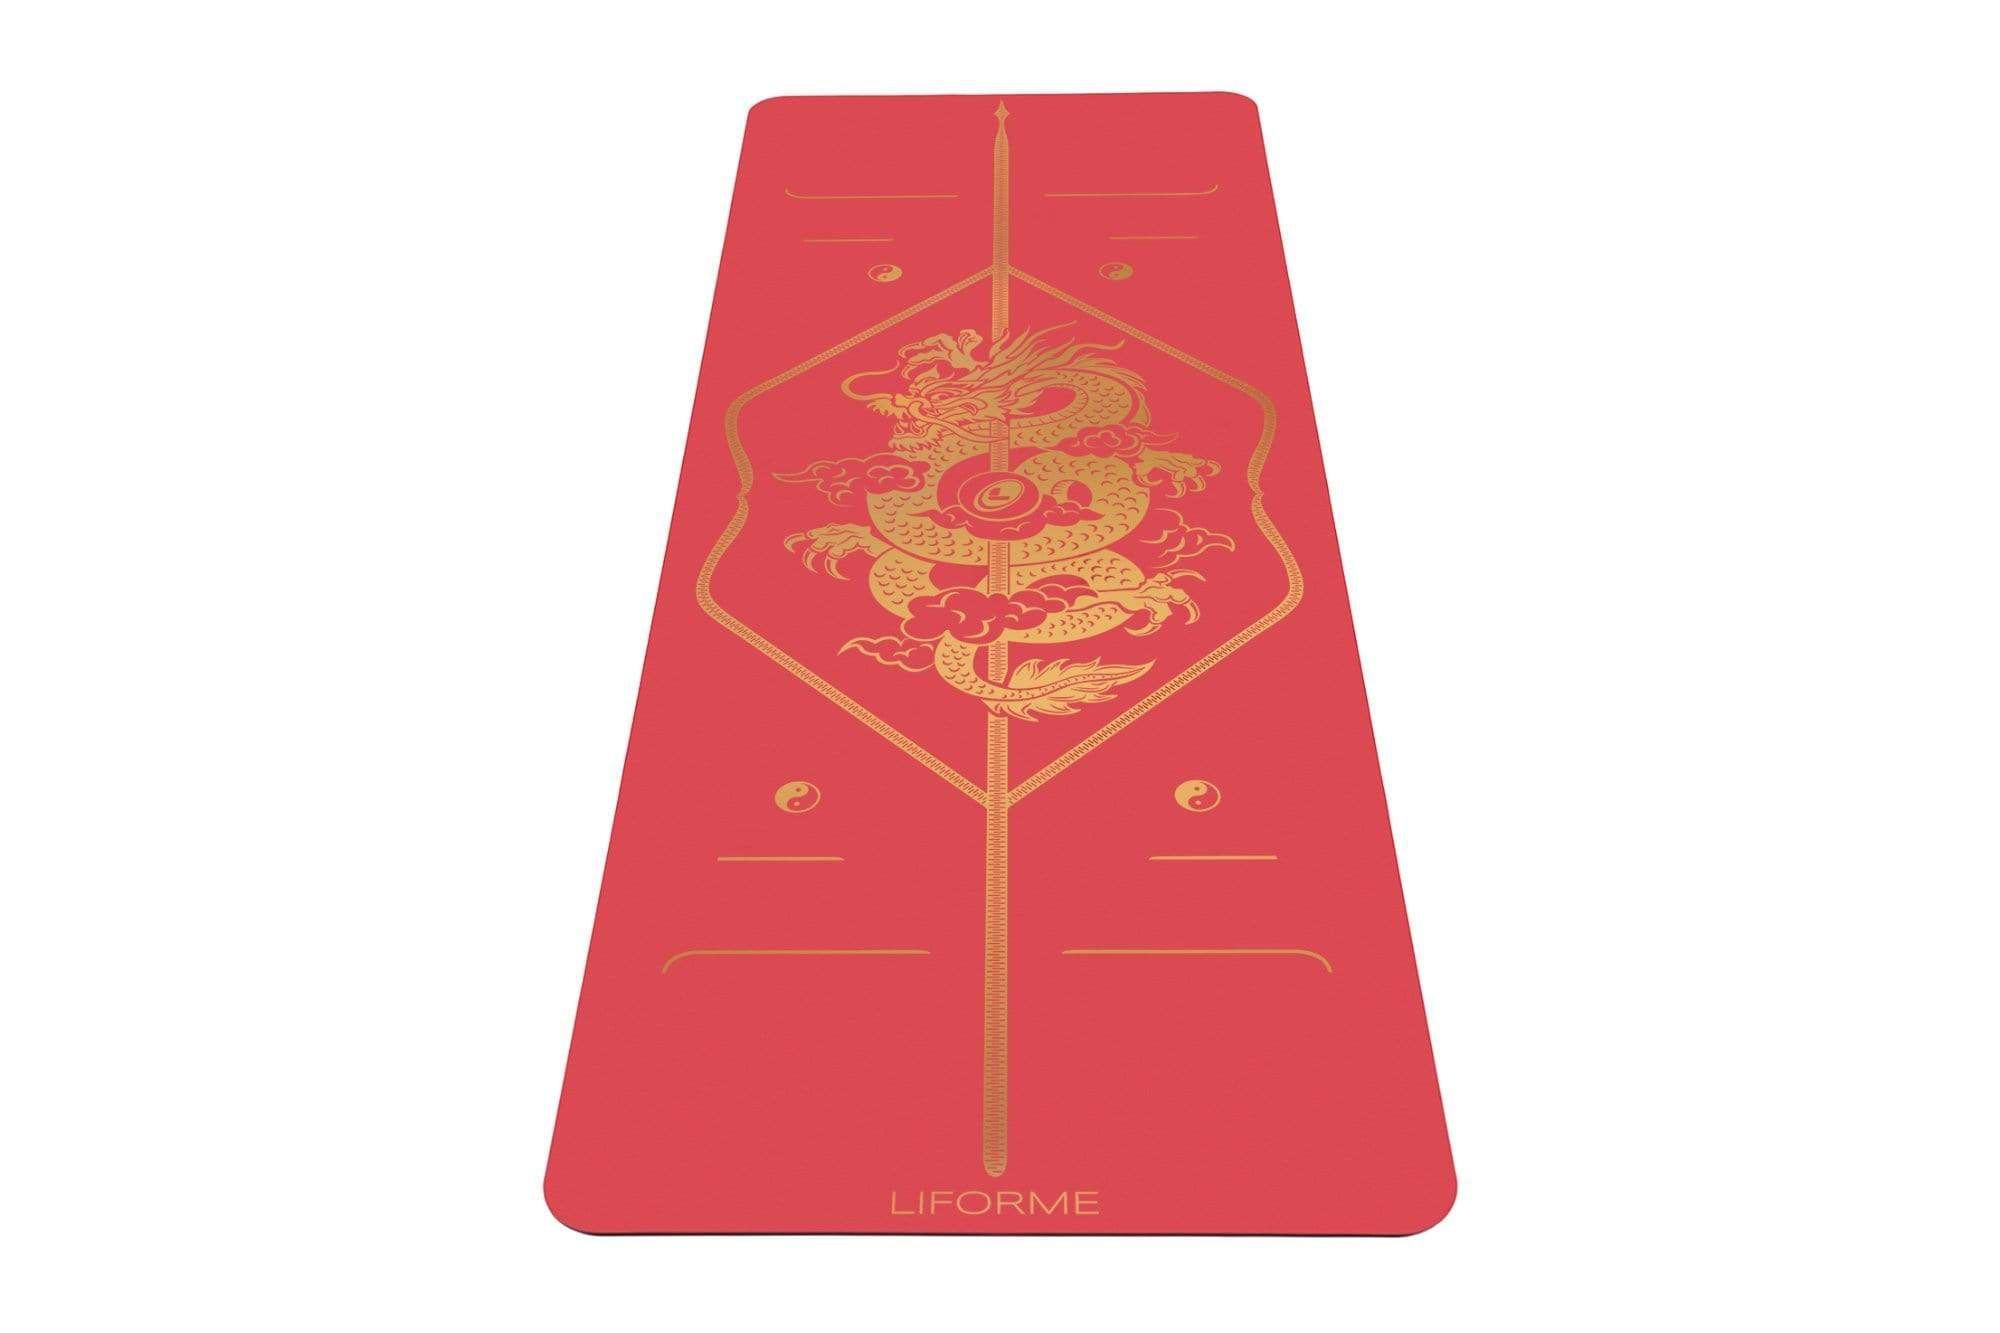 Portrait view of Dragon Yoga mat from Liforme